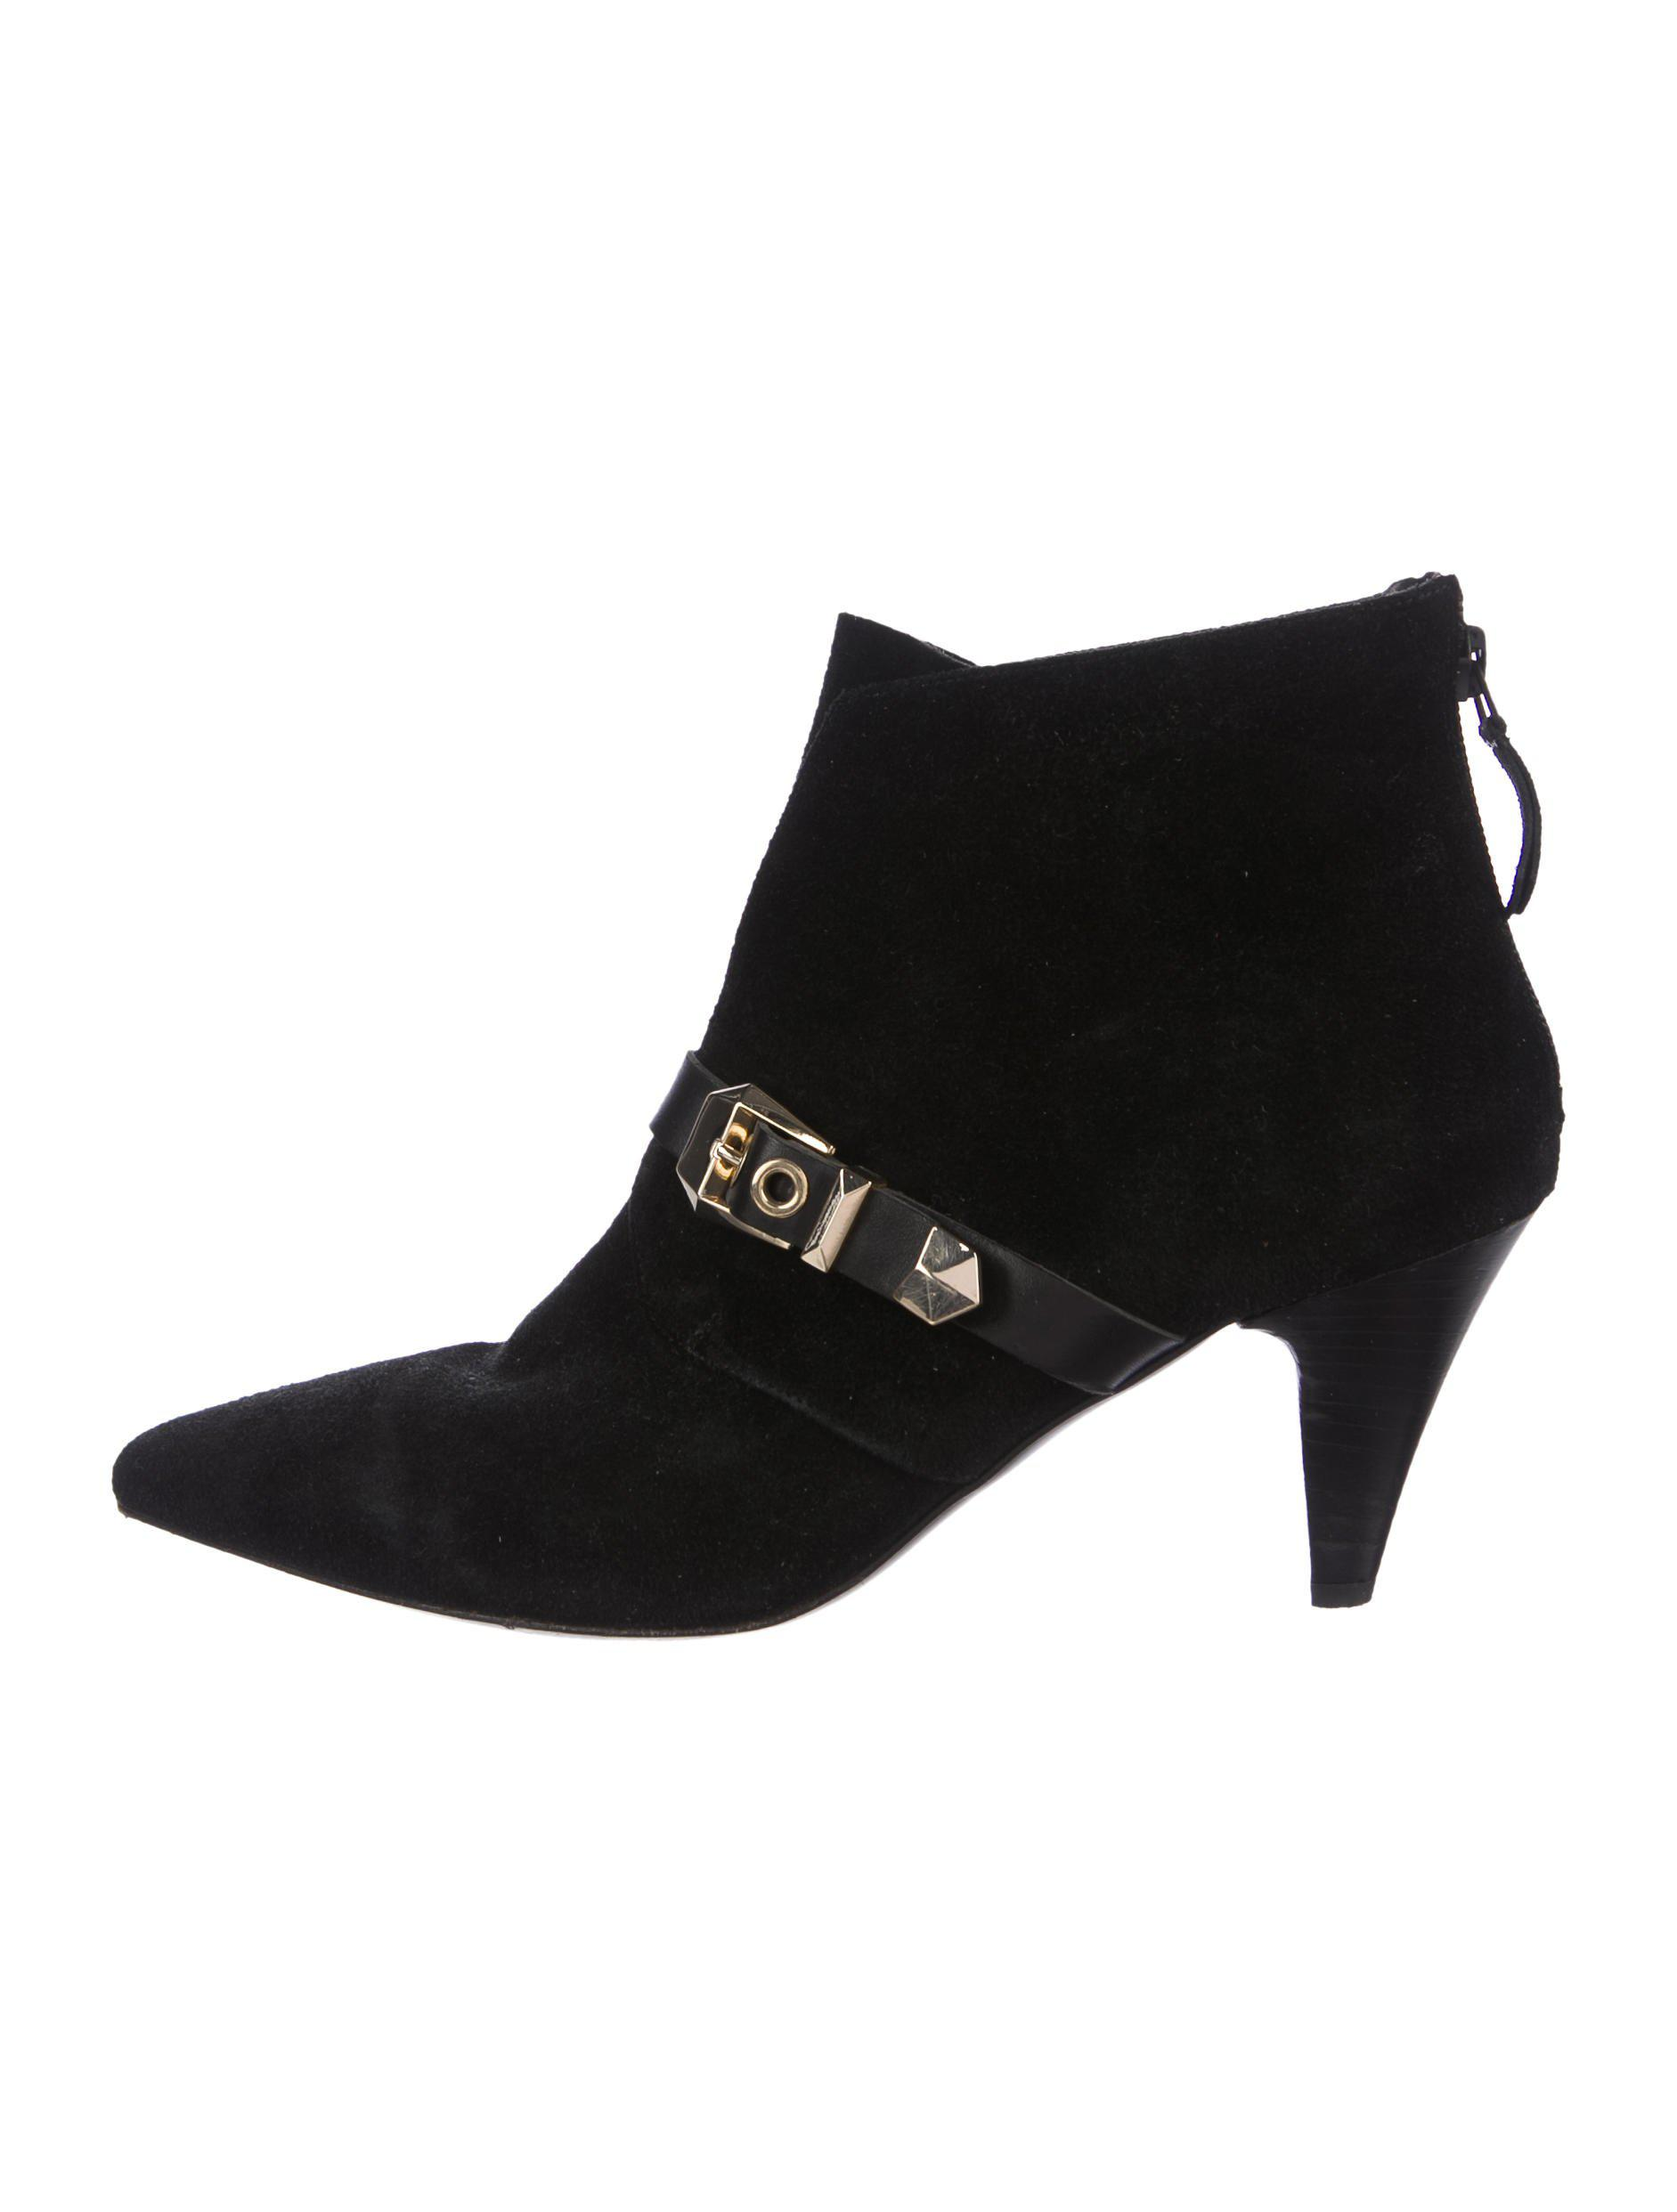 3ce2b66868b6c Lyst - Sandro Suede Pointed-toe Ankle Boots Black in Metallic